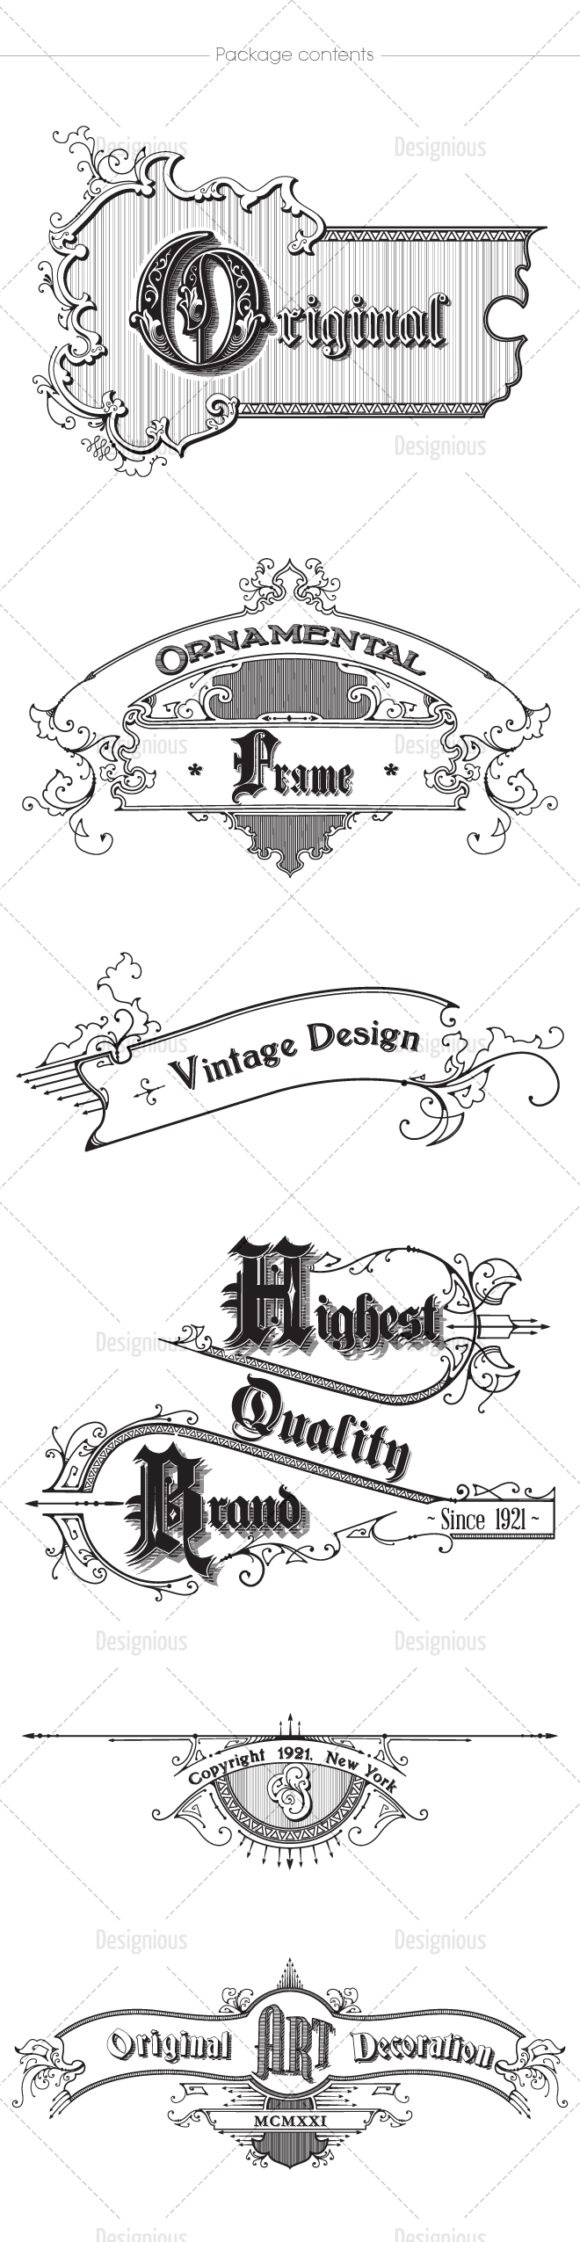 Vintage Ornaments Vector Pack 6 products designious vintage ornaments 6 large